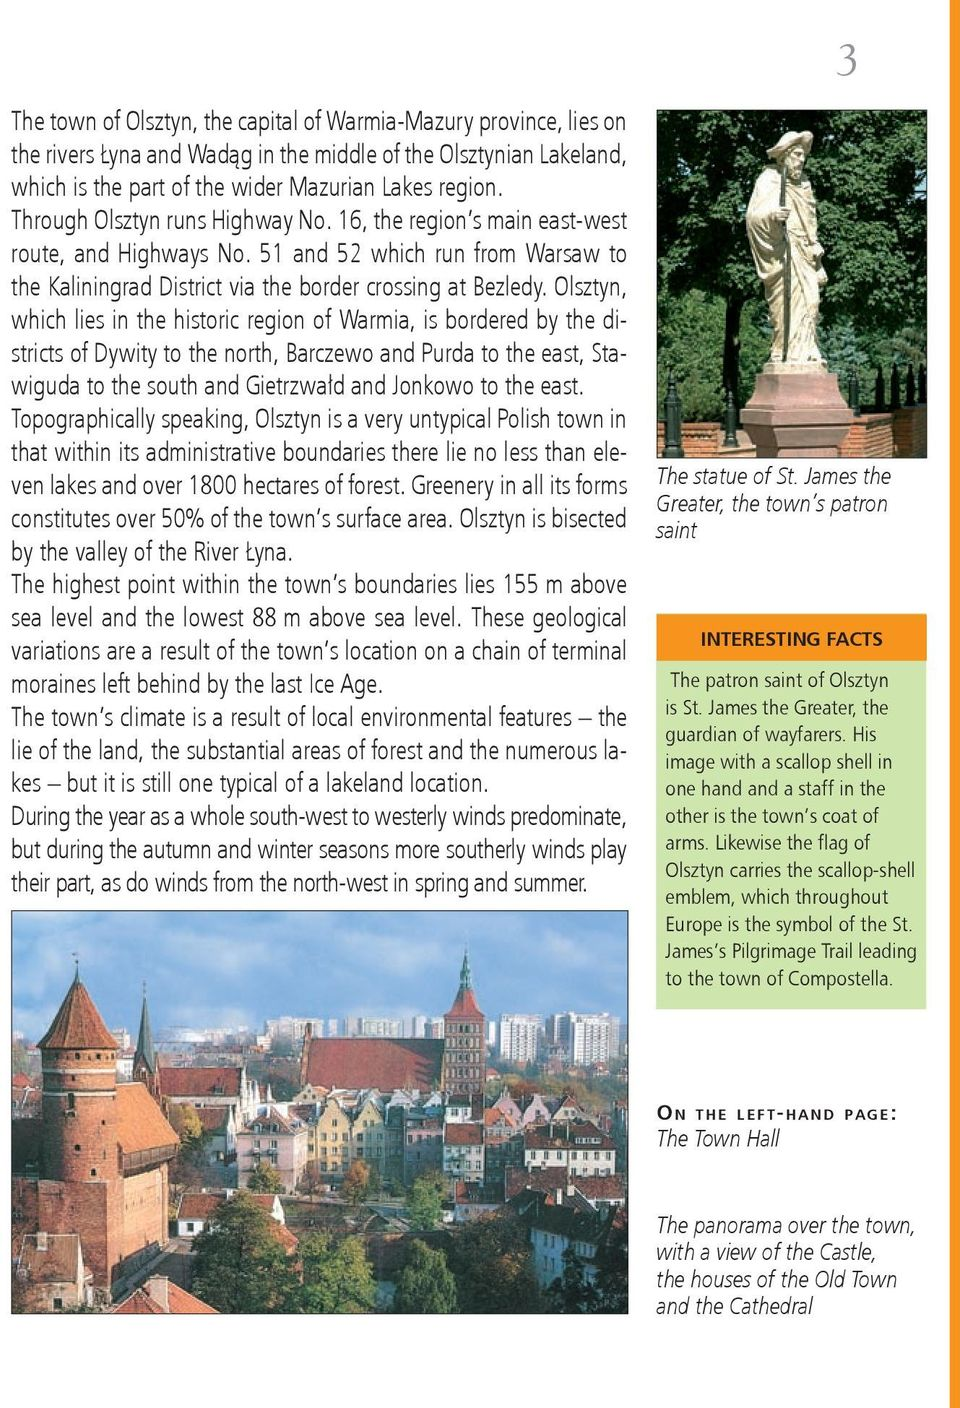 Olsztyn, which lies in the historic region of Warmia, is bordered by the districts of Dywity to the north, Barczewo and Purda to the east, Stawiguda to the south and Gietrzwałd and Jonkowo to the